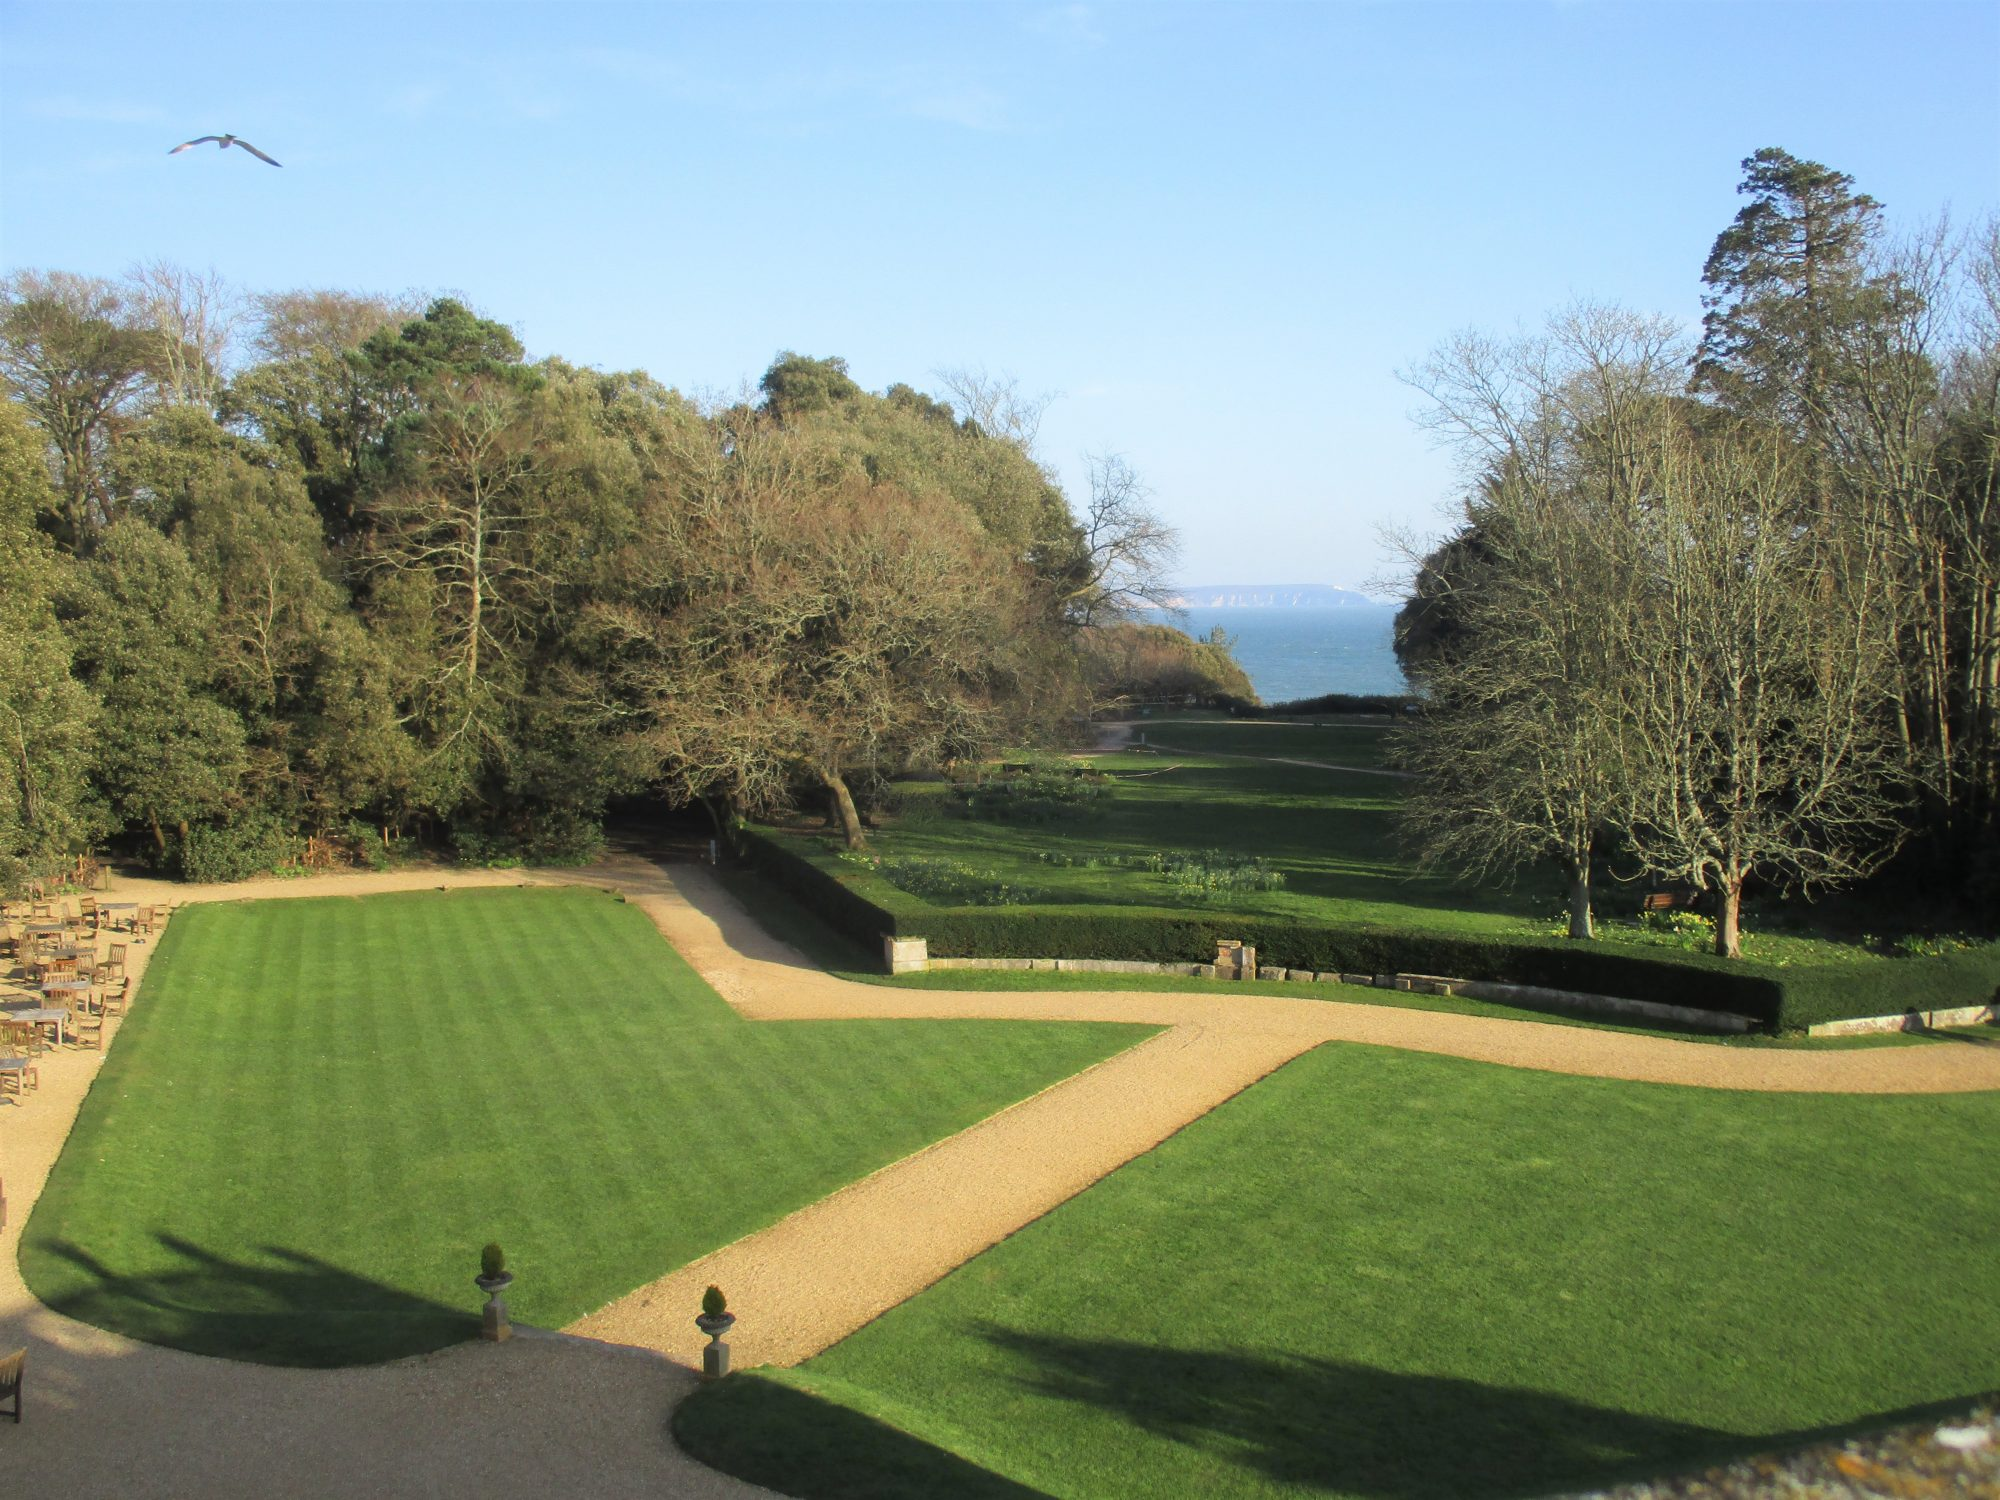 Lawns surrounded by gravel paths and view of the sea between tall trees